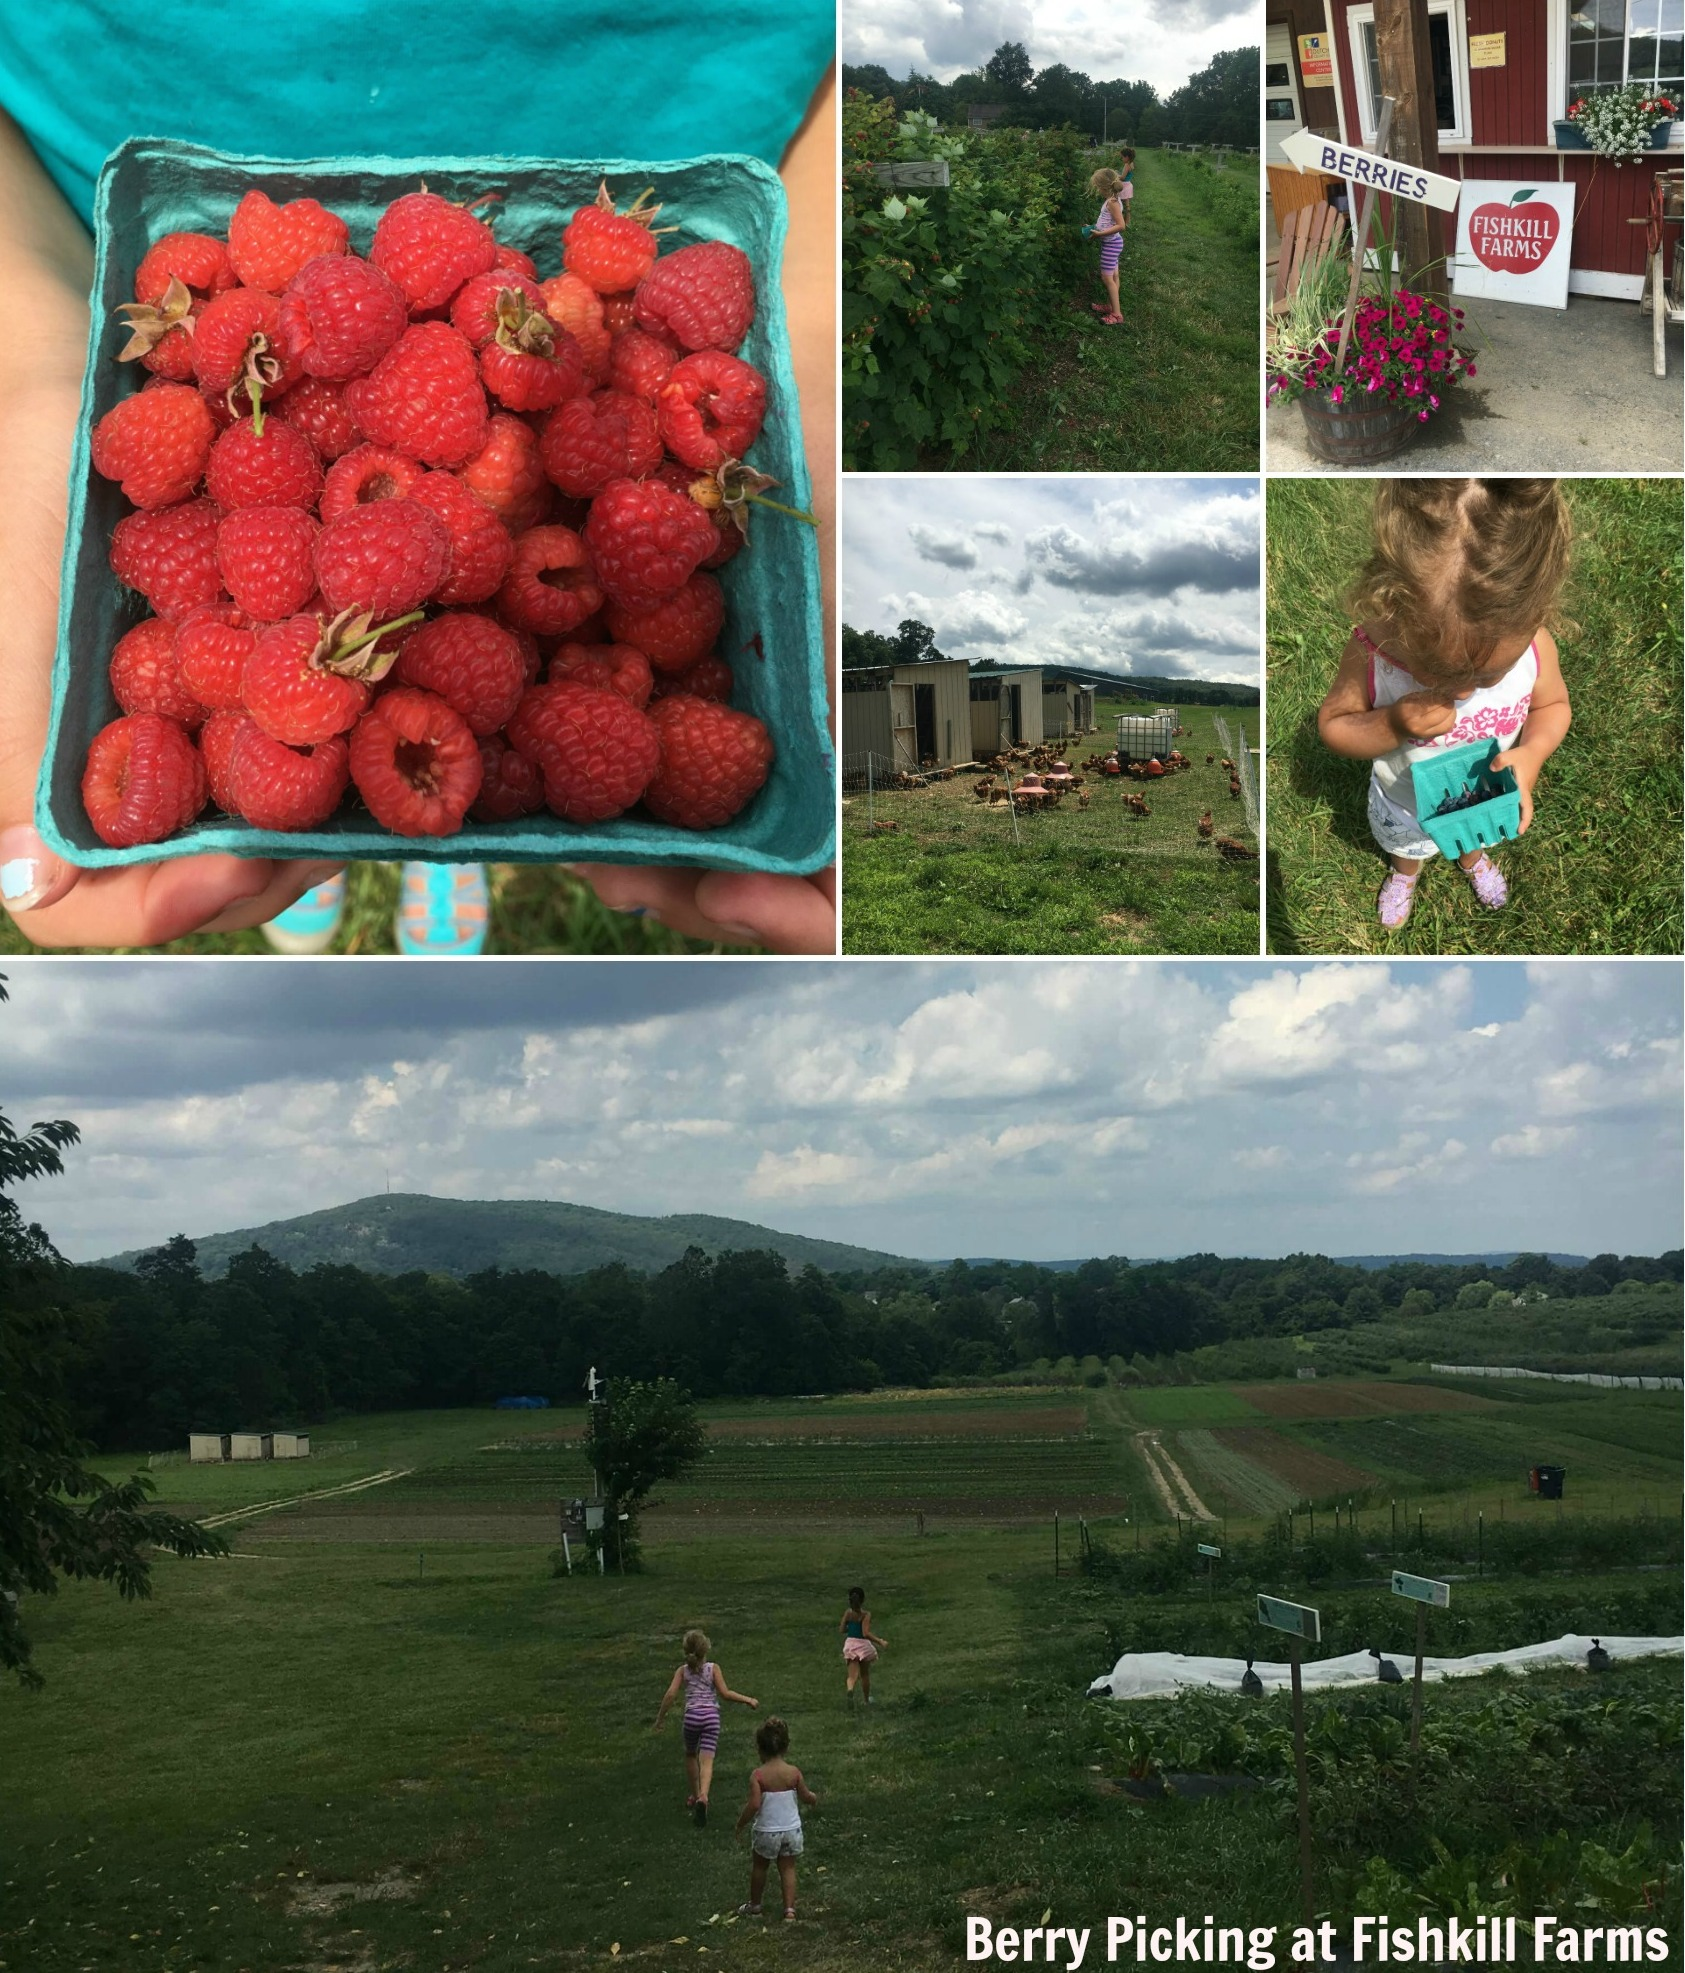 fishkill farms berry picking